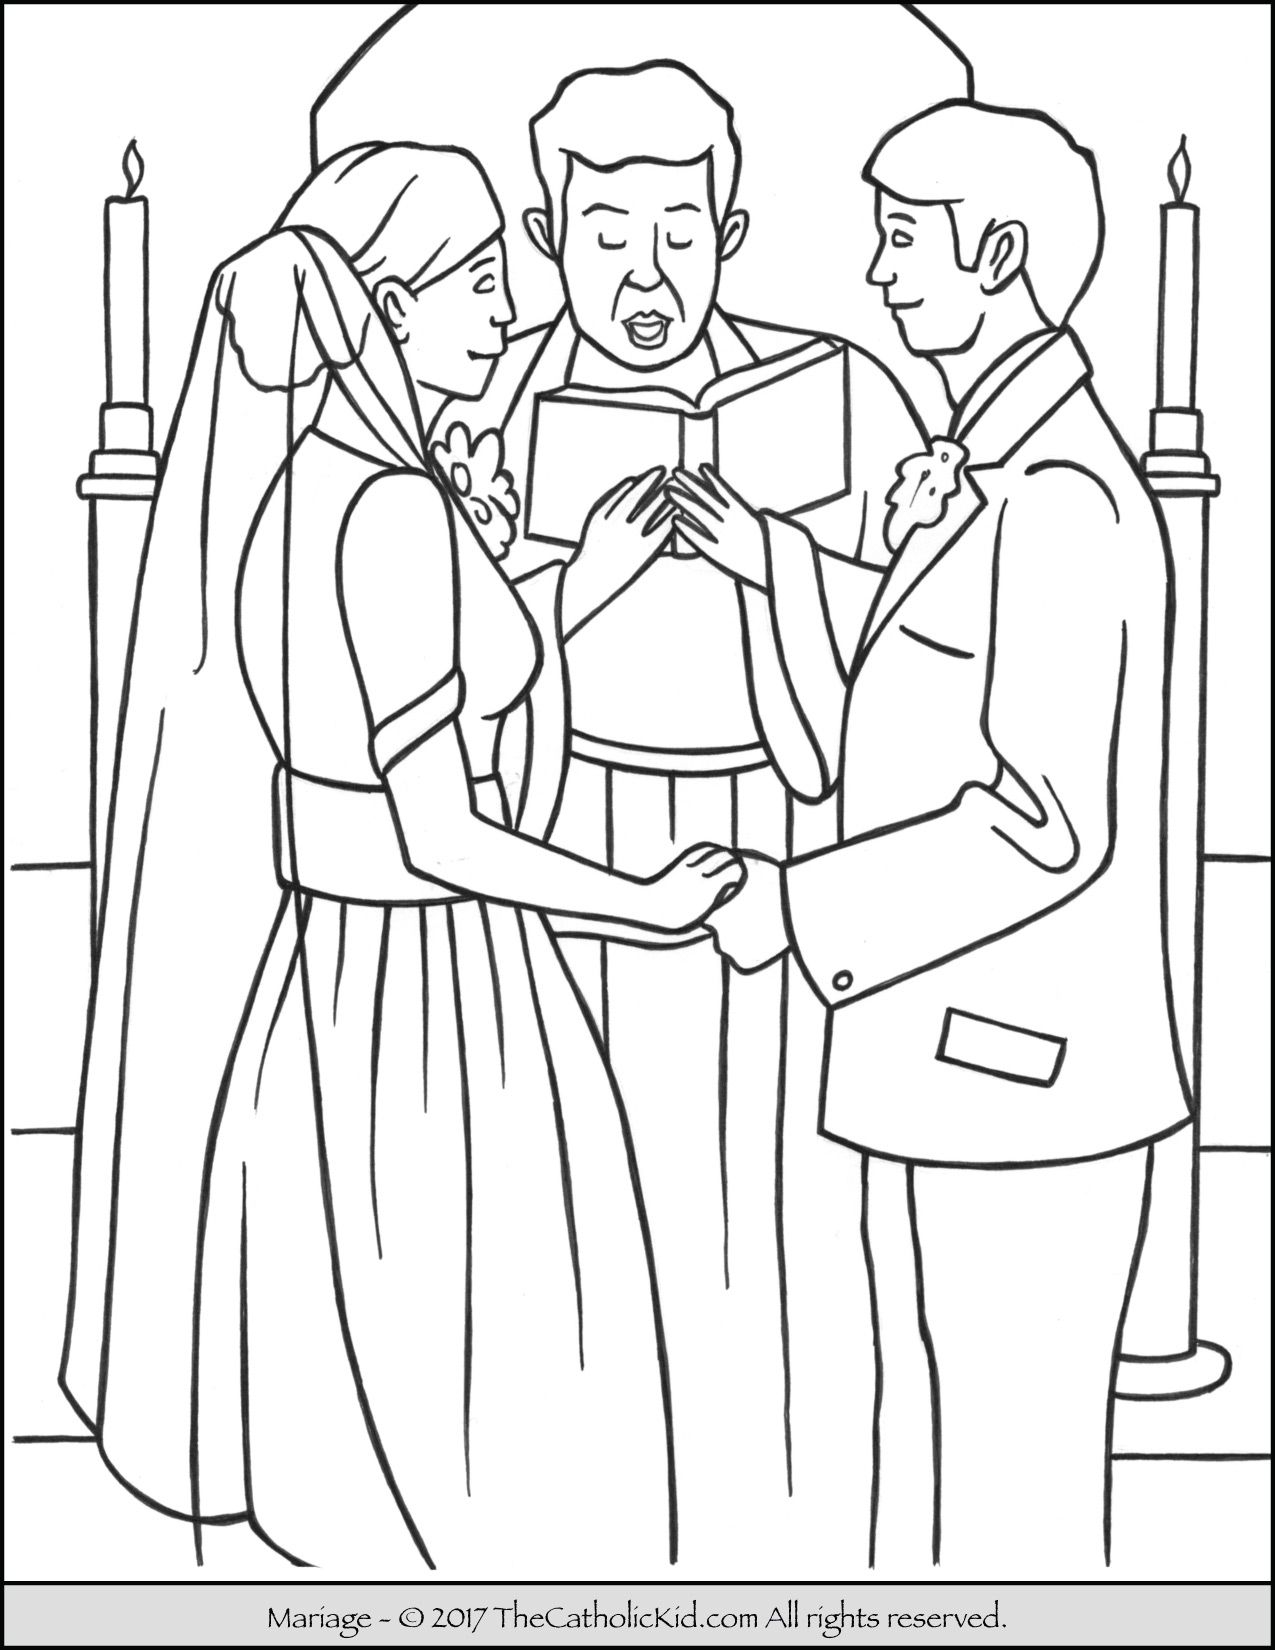 Sacrament marriage coloring page the 7 sacraments for Marriage coloring pages